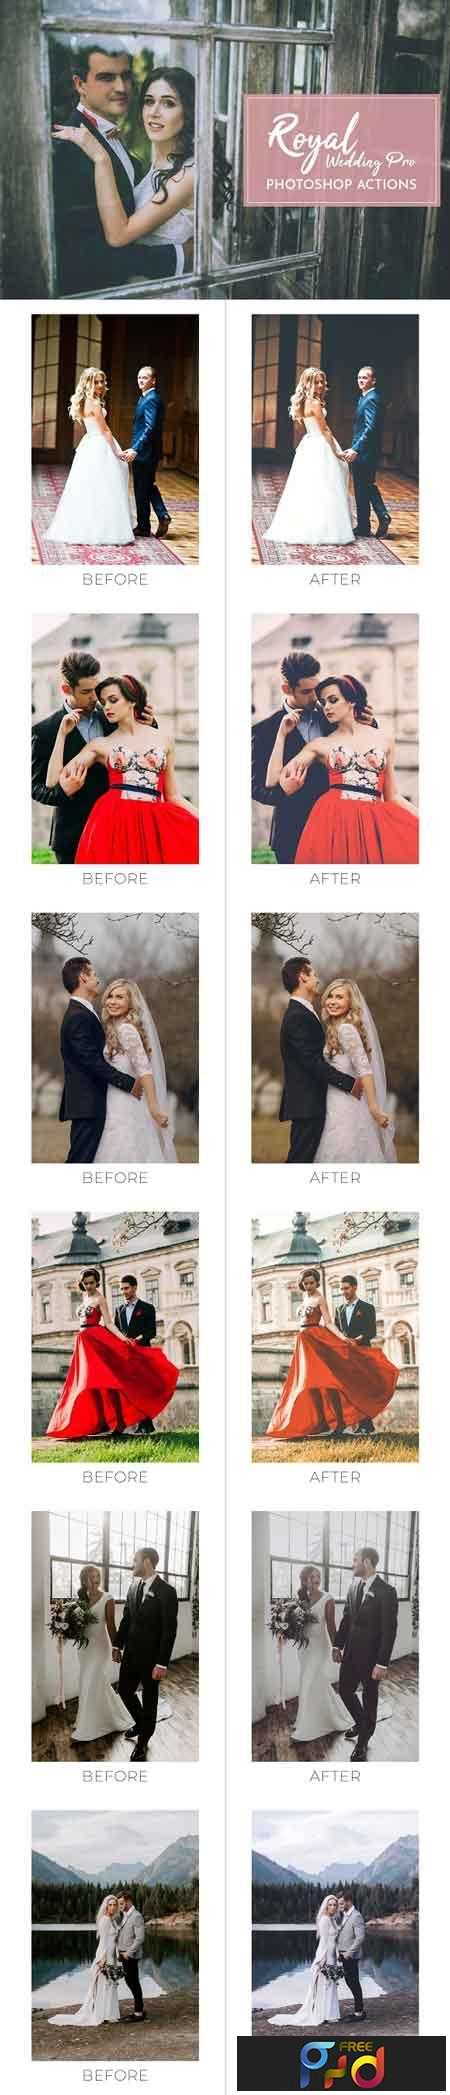 1808058 Royal Wedding Pro Photoshop Actions 2688845 1